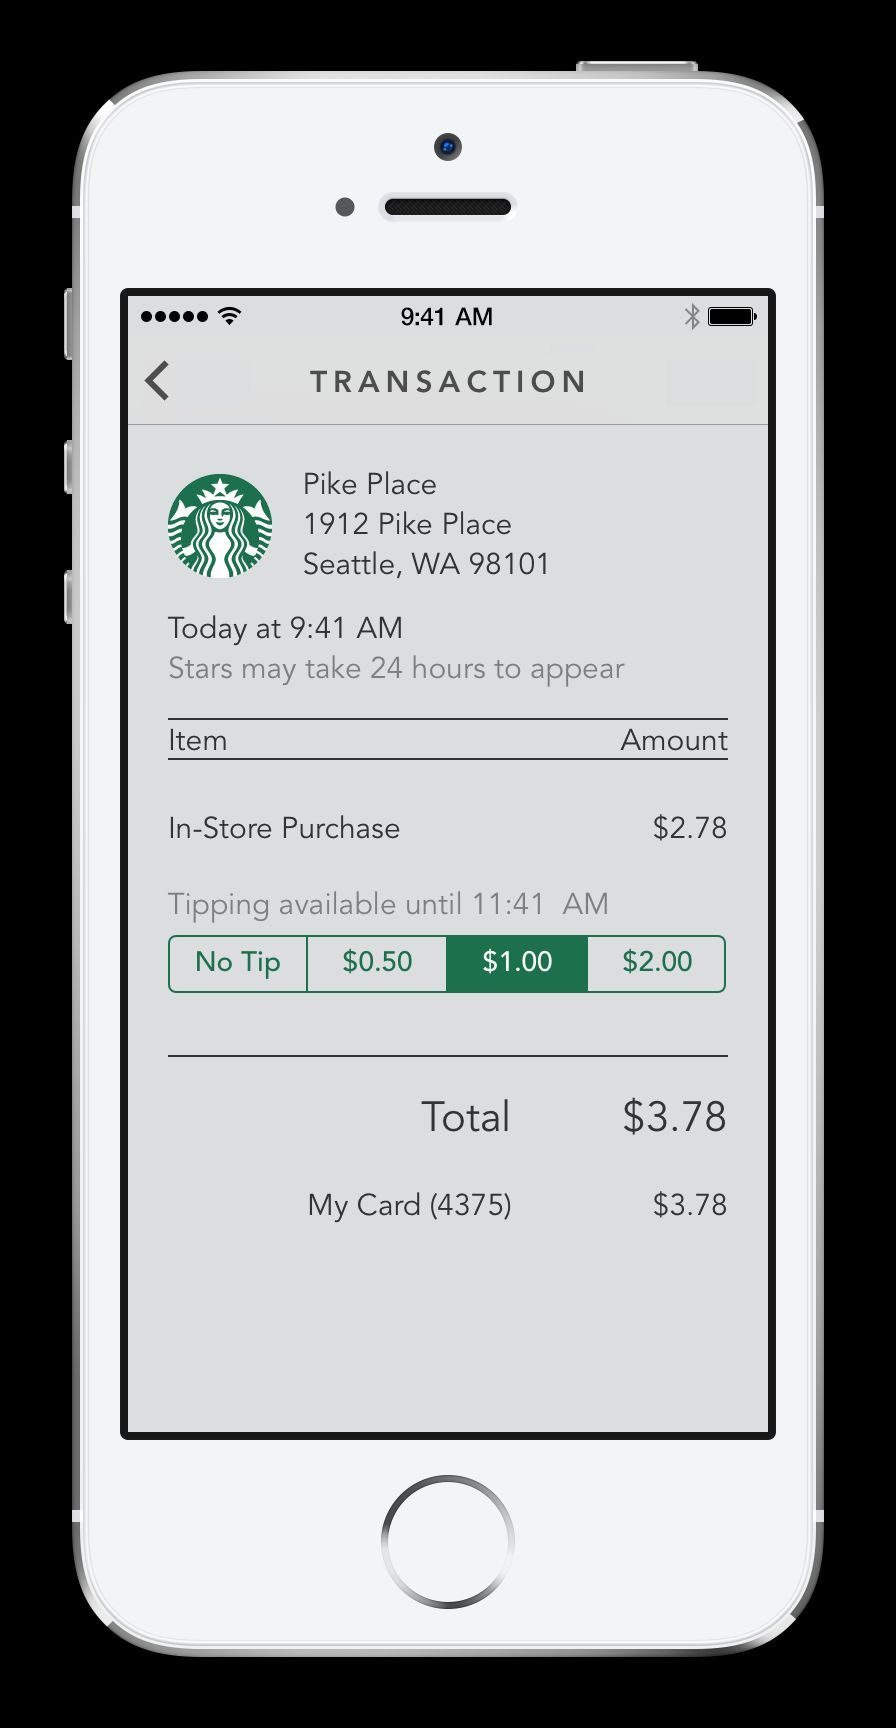 Customers using the Starbucks App for iPhone will have the option to leave a tip at company-operated Starbucks(R) stores in the U.S. (Photo: Business Wire)